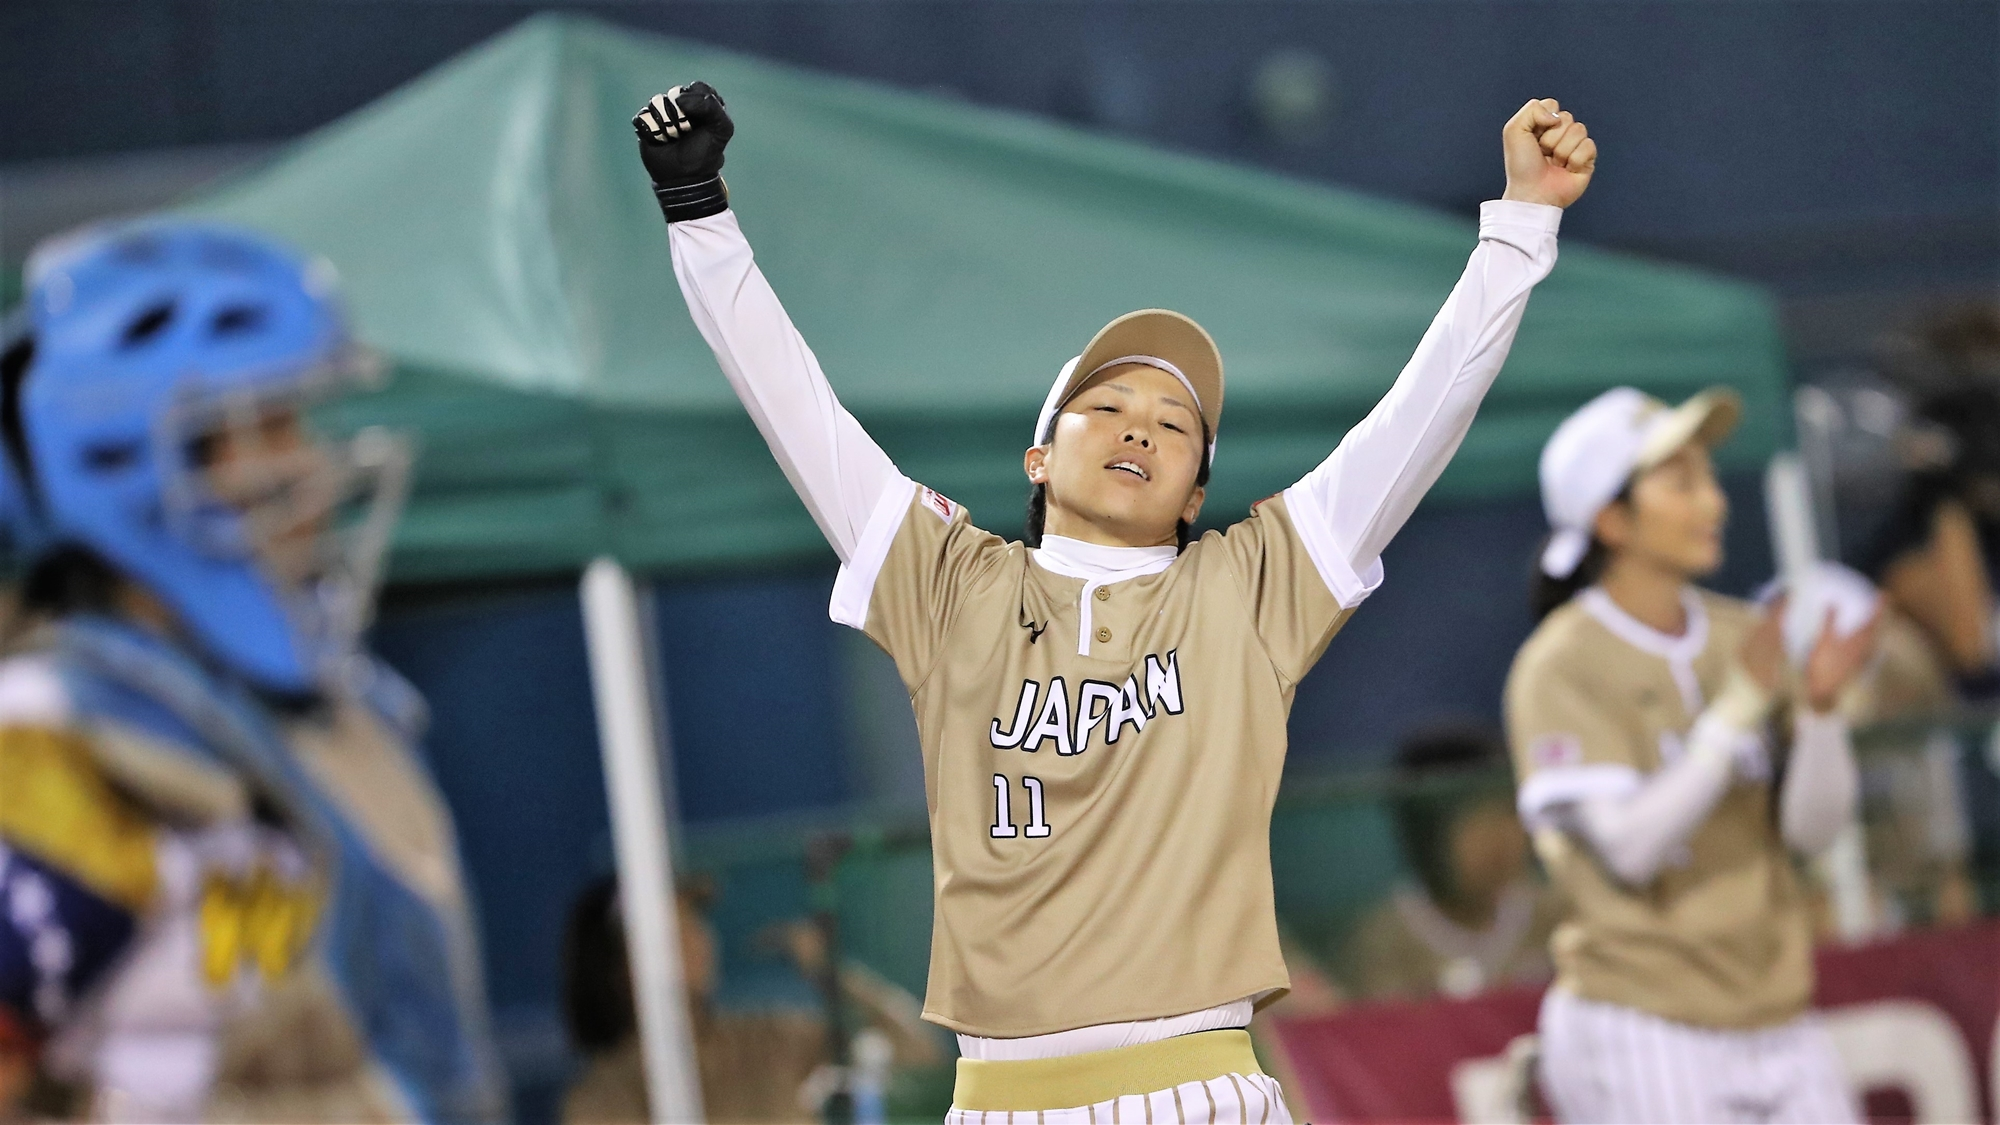 Eri Yamada celebrates a run for Japan